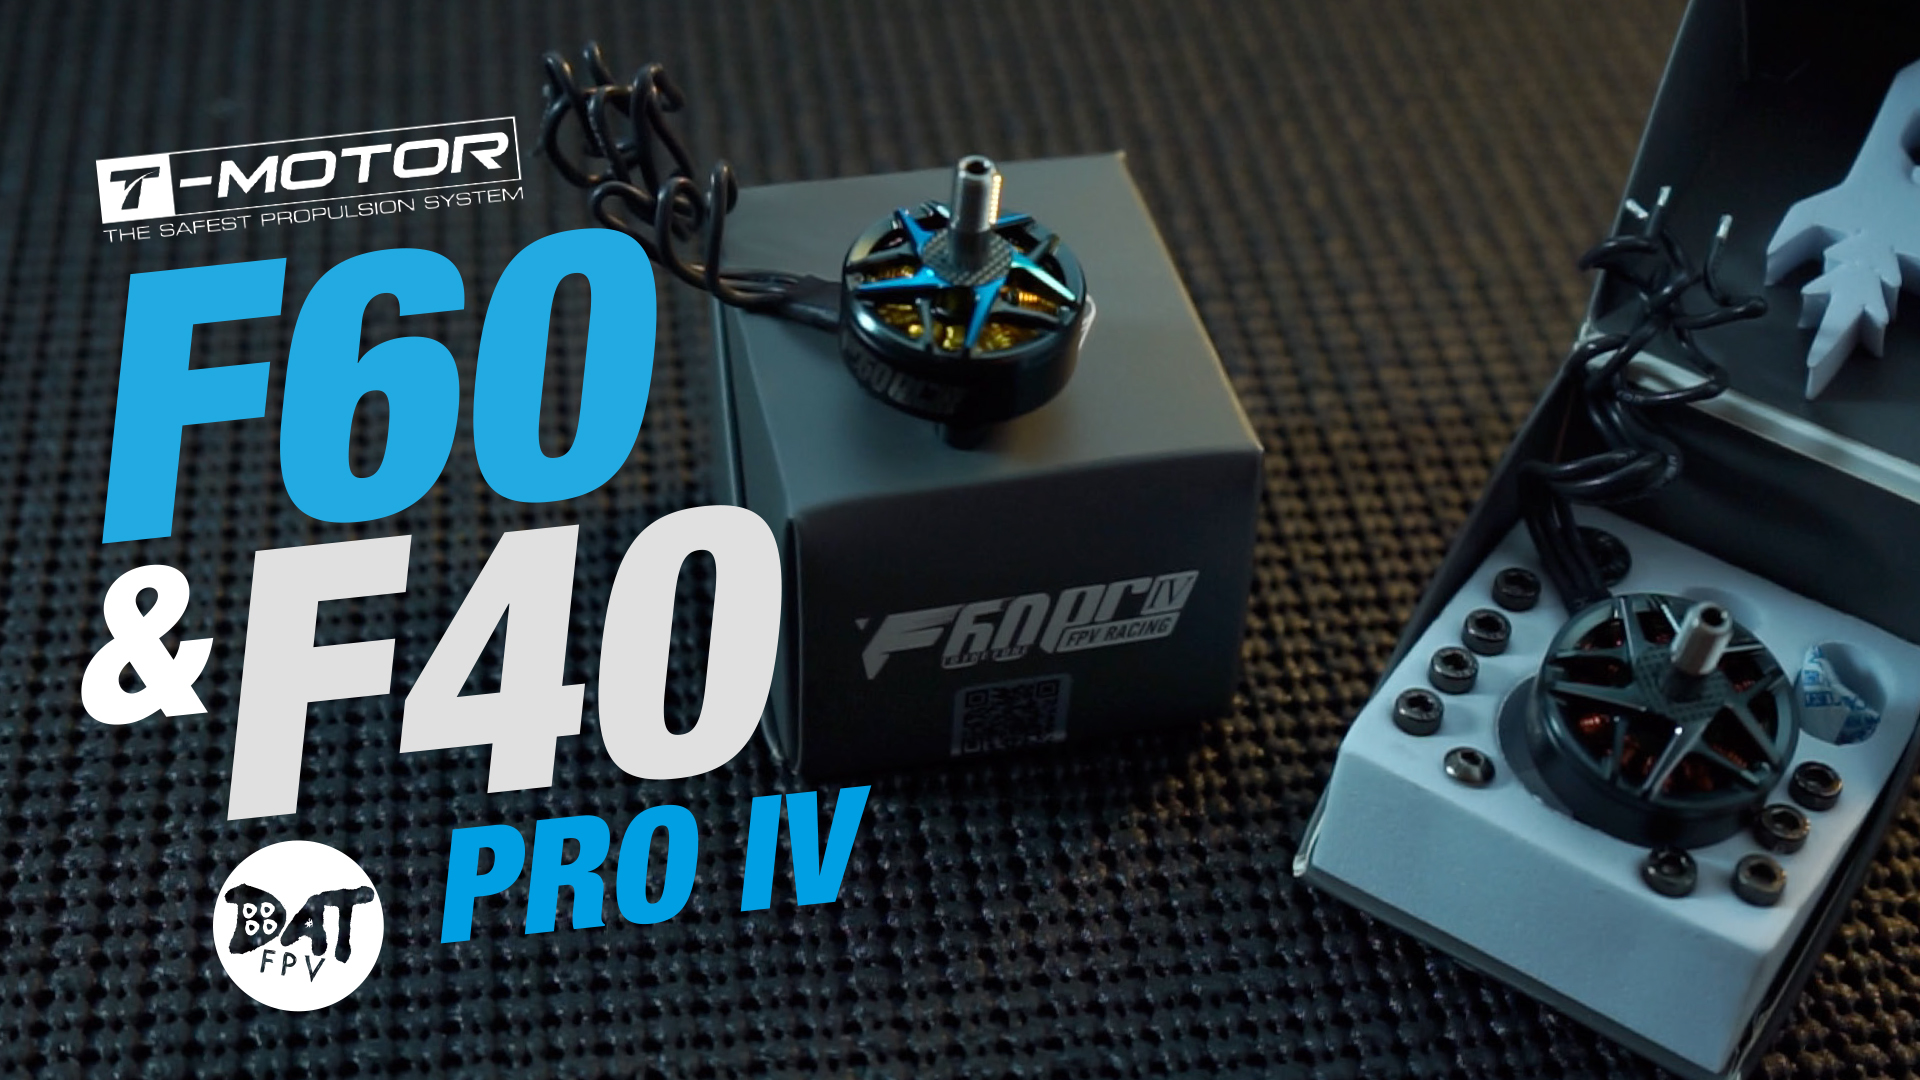 T Motor F60 And F40 Pro IV